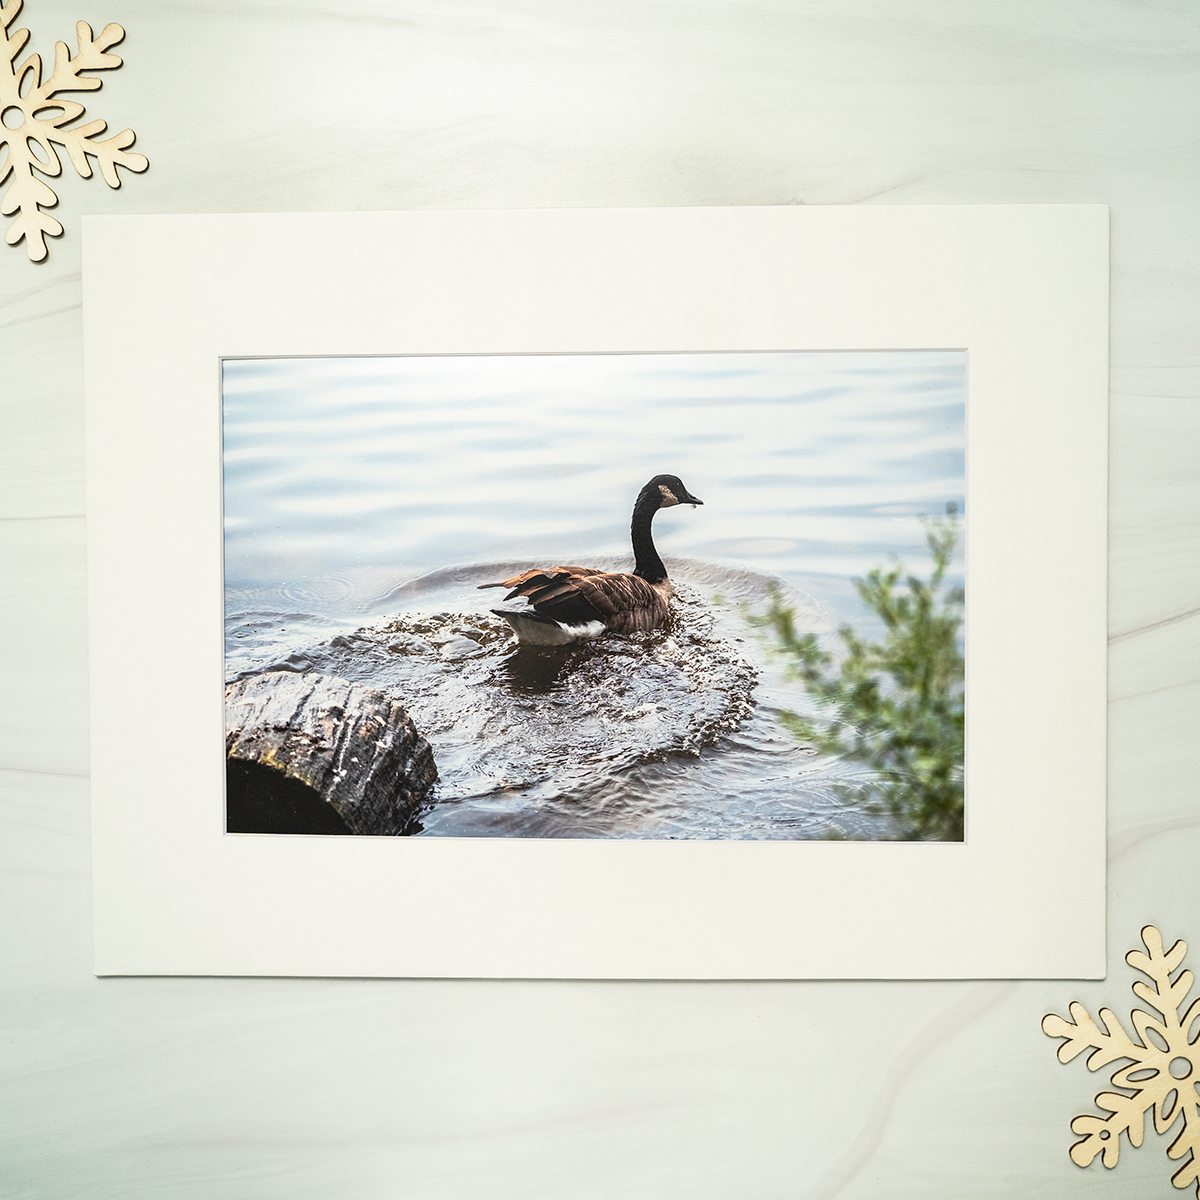 The Push Off Photograph by Garett Southerton part of the Water Birds Collection